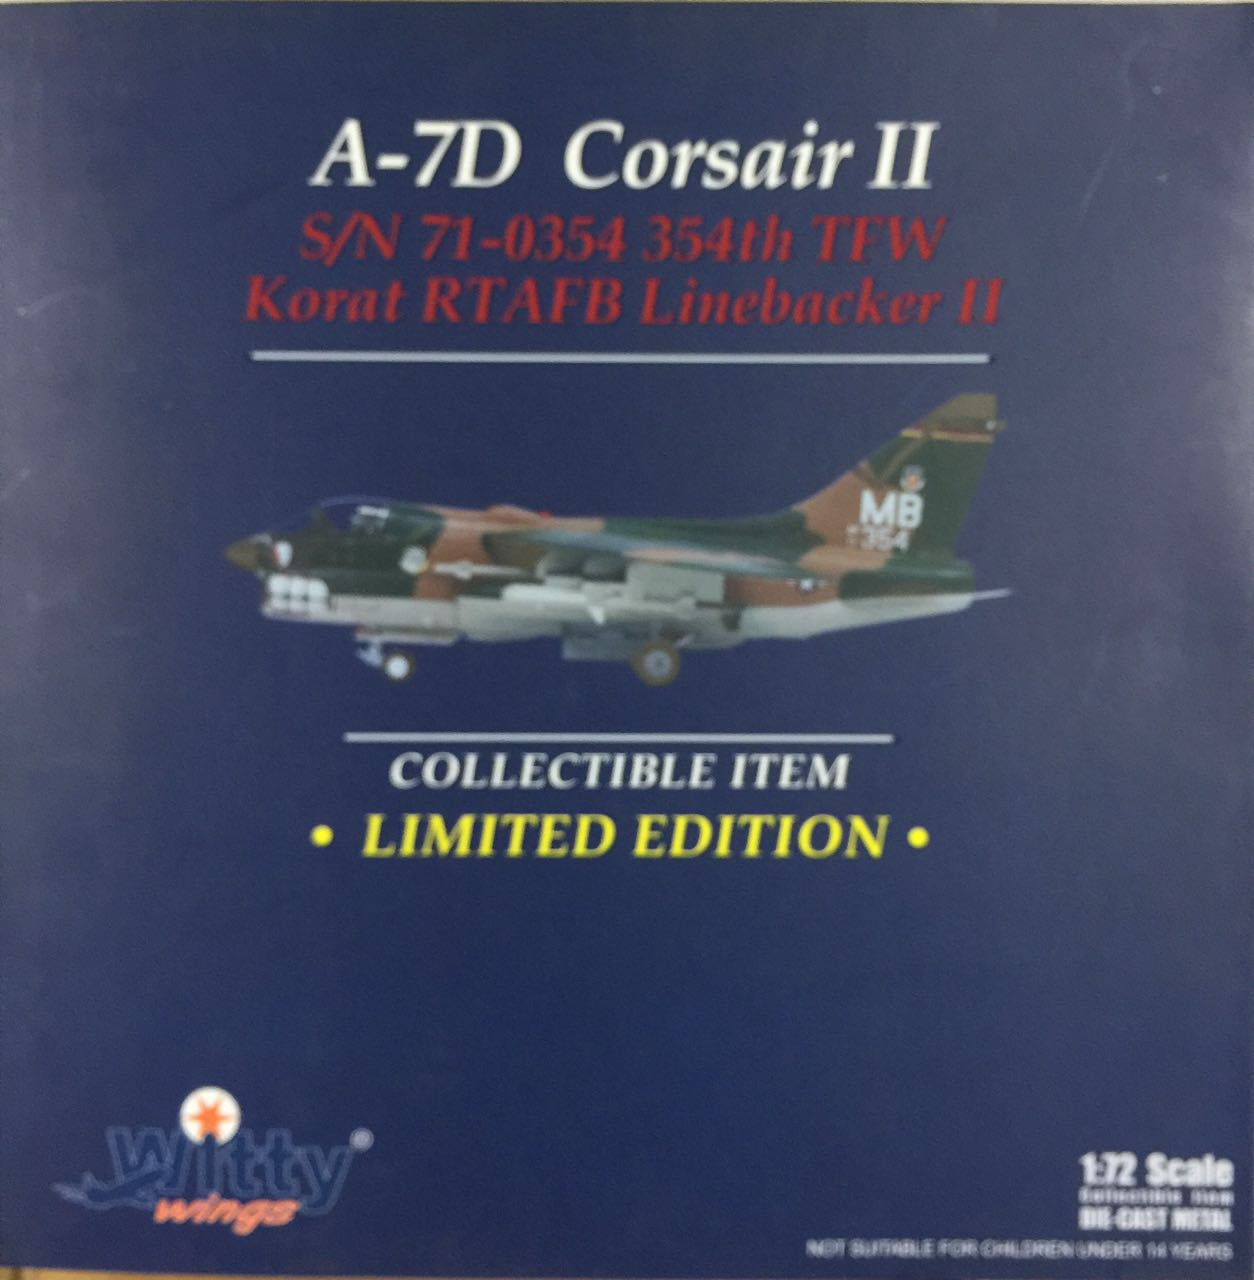 024-007 A-7D Witty Pirates of the U.S. Air Force 1:72 fighter Finished Model